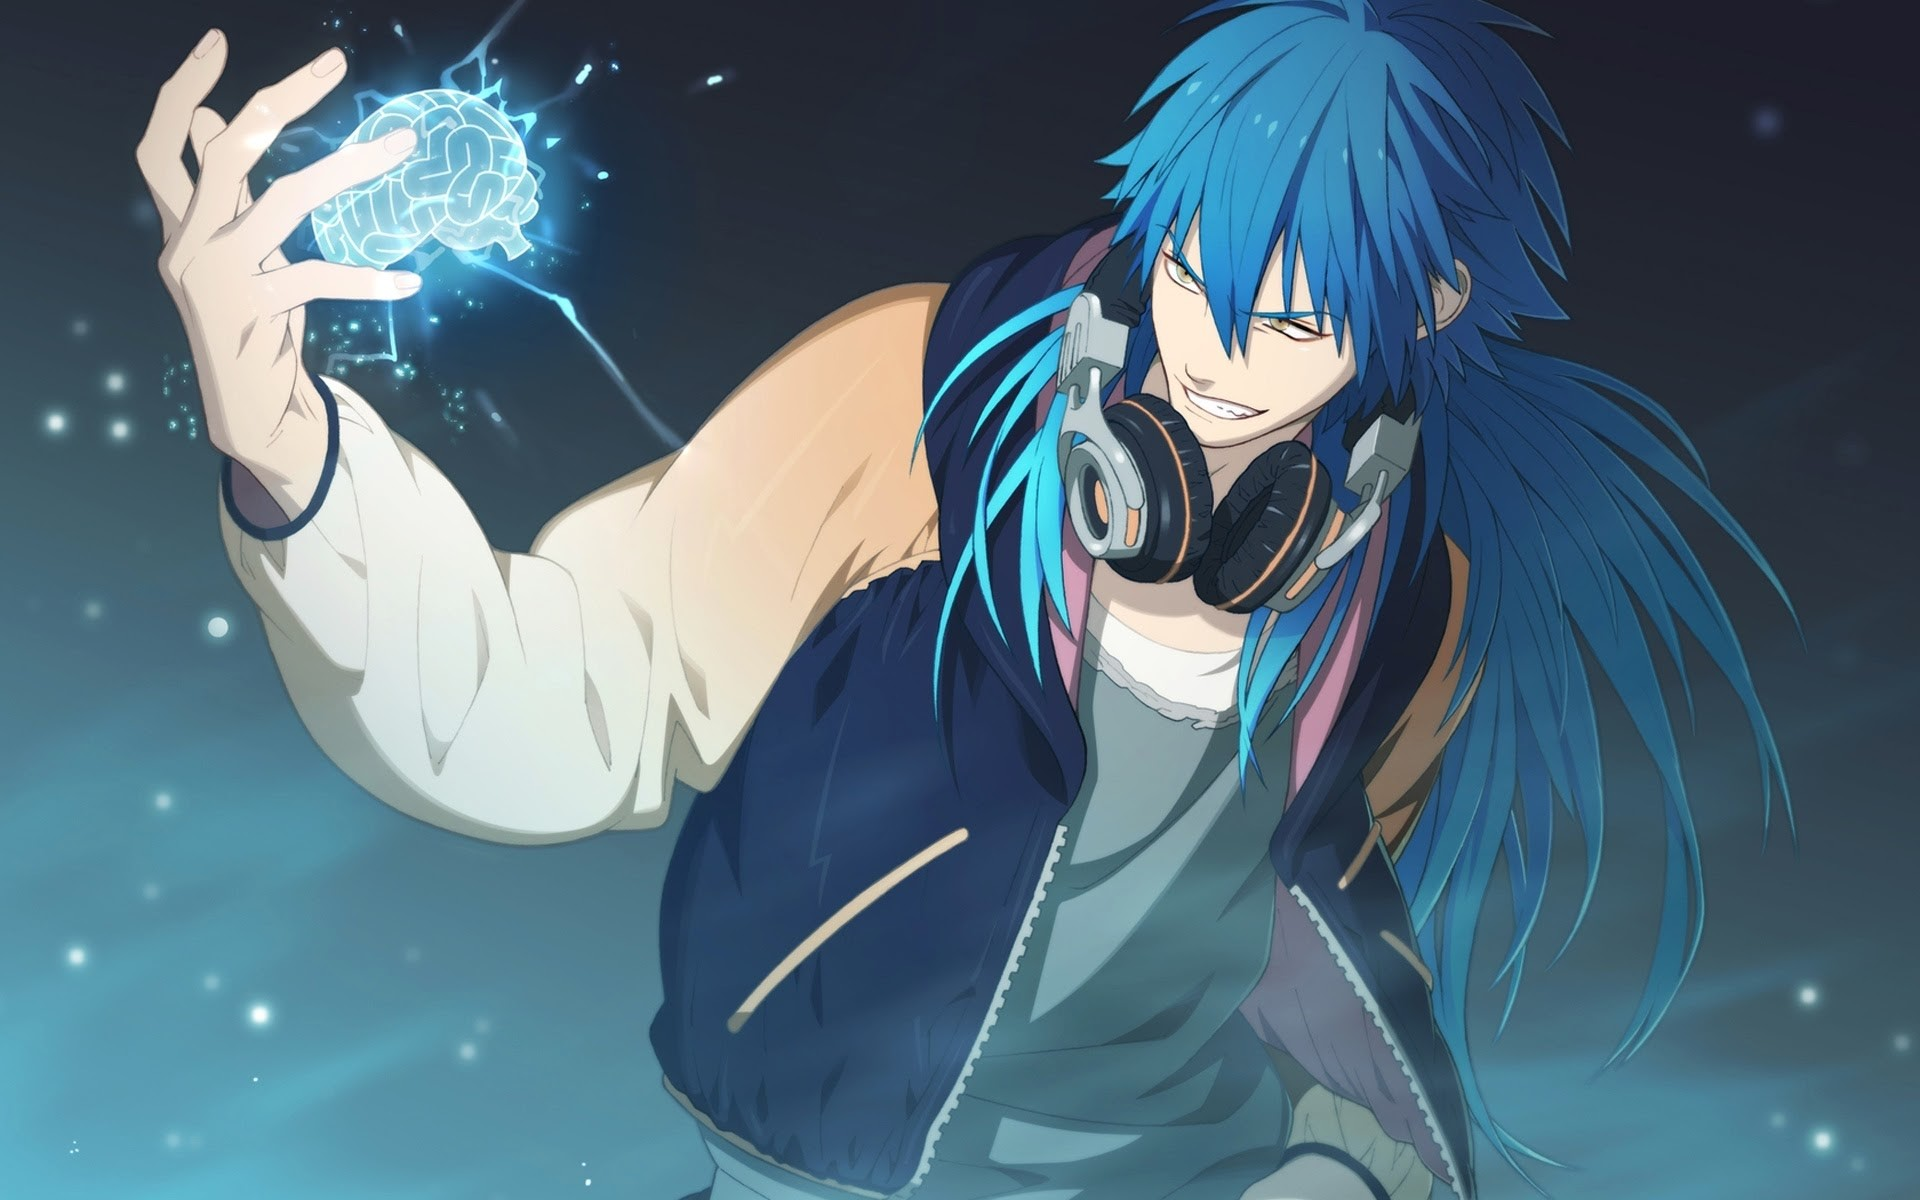 Res: 1920x1200, anime boy wallpaper a· animated boy wallpapers collection